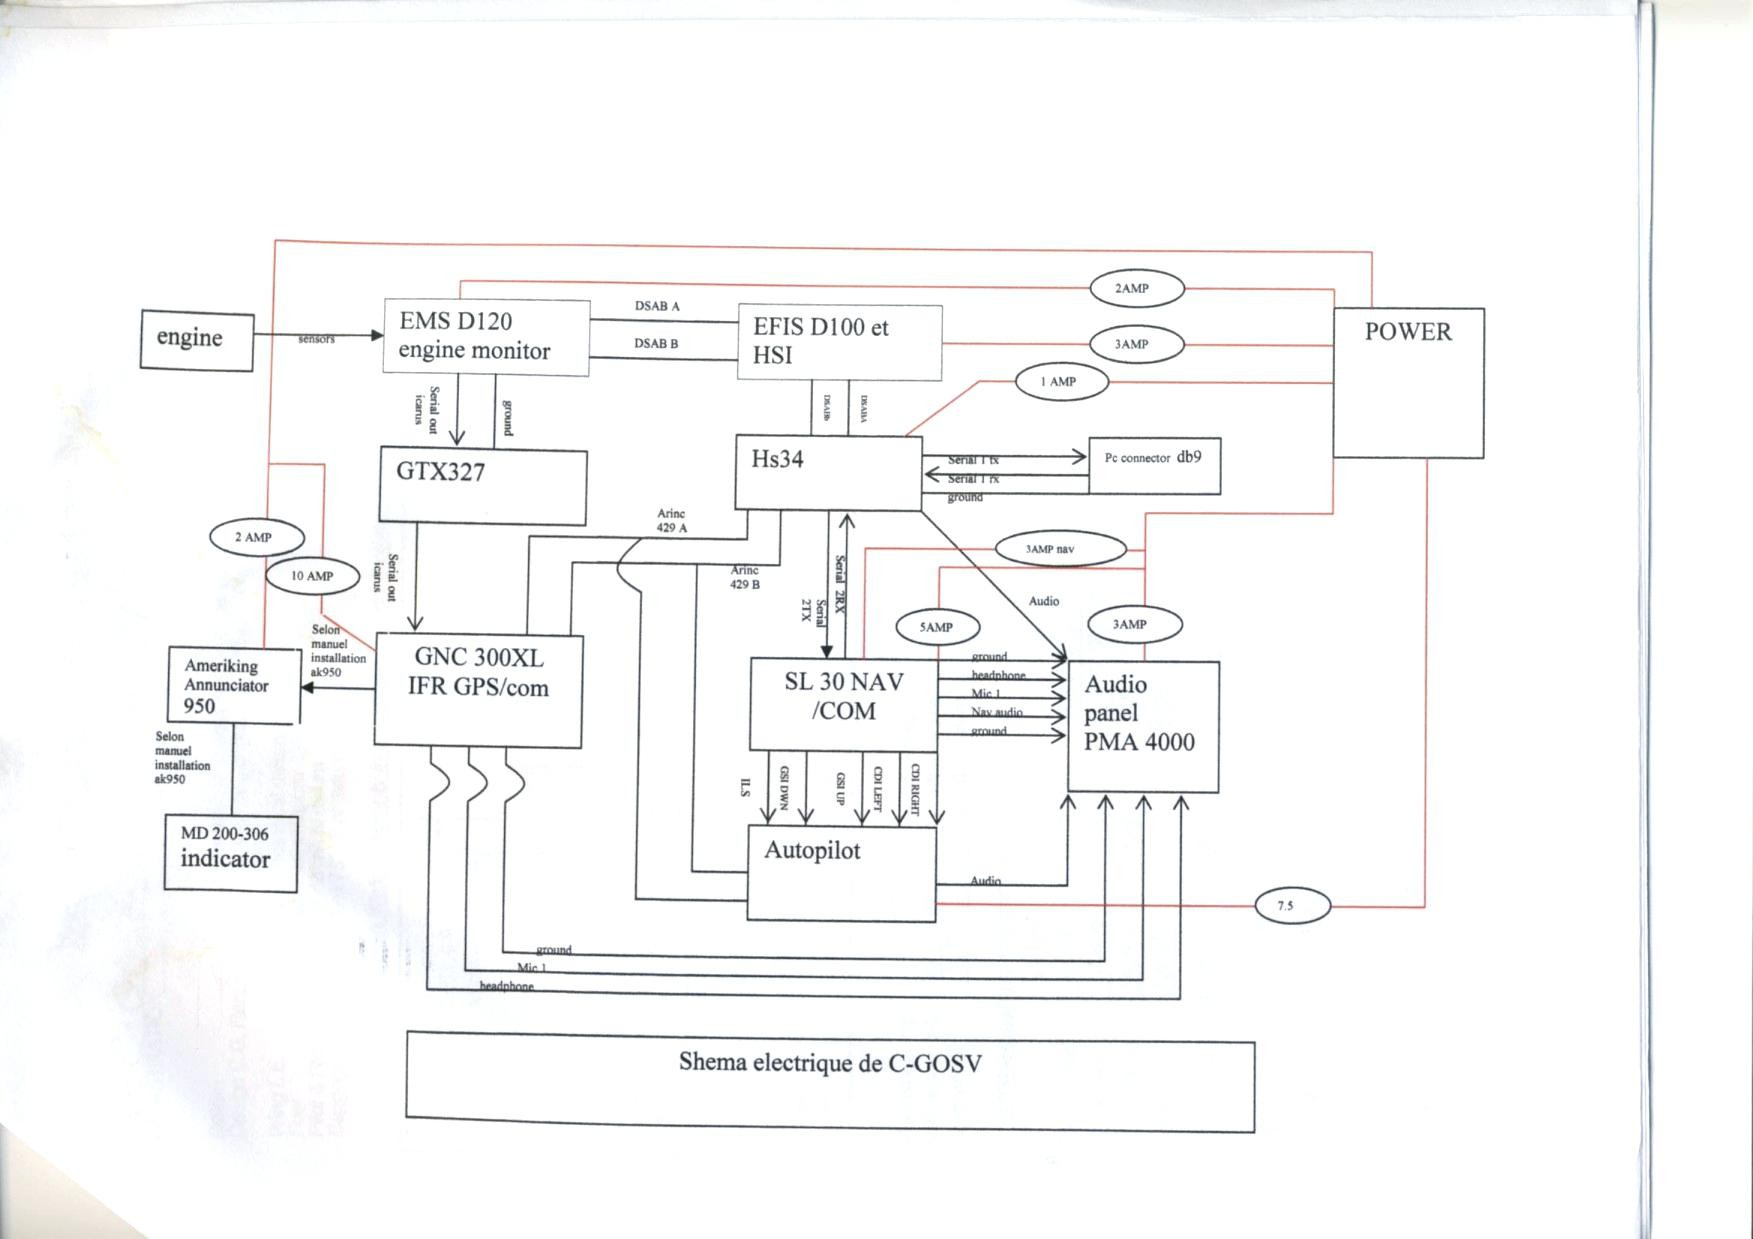 Garmin Gt21 Th Transducer Wire Diagram - Wiring Diagram Database on garmin speedometer, garmin 3010c wiring, atx connector diagram, data mapping diagram, garmin network cable wiring, garmin sensor, garmin usb wiring,